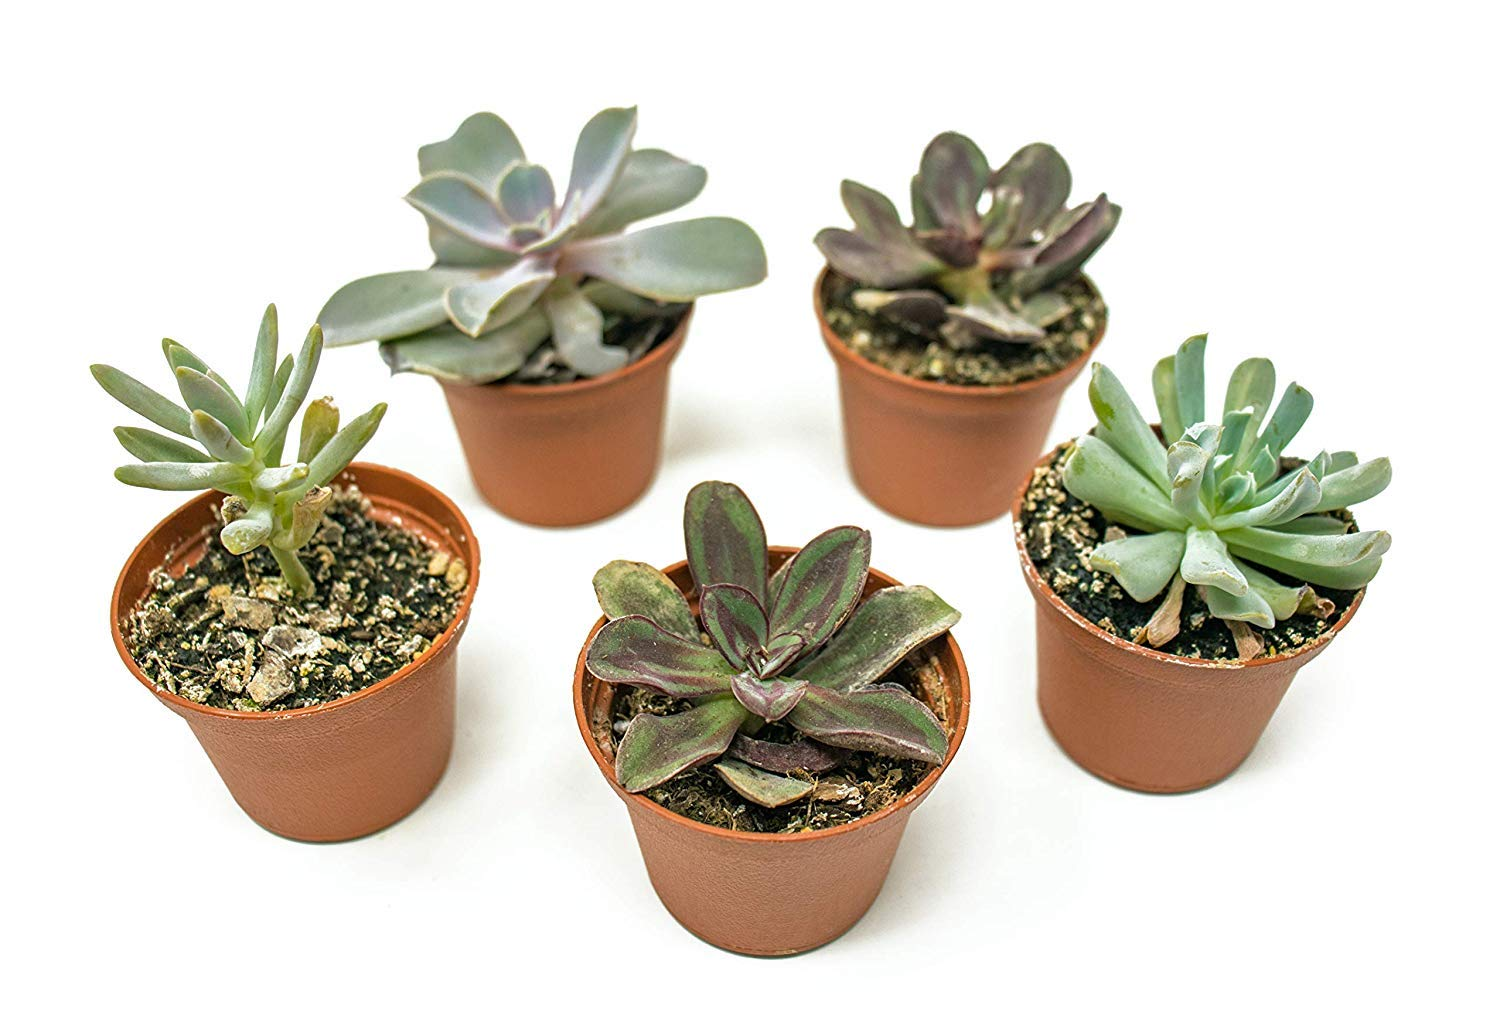 20 Live ''B-Grade'' Succulents | House Plants with Minor Flaws | Healthy Discounted Cheap Succulent Plants in Planter Pots with Soil by Plants for Pets by Plants for Pets (Image #6)